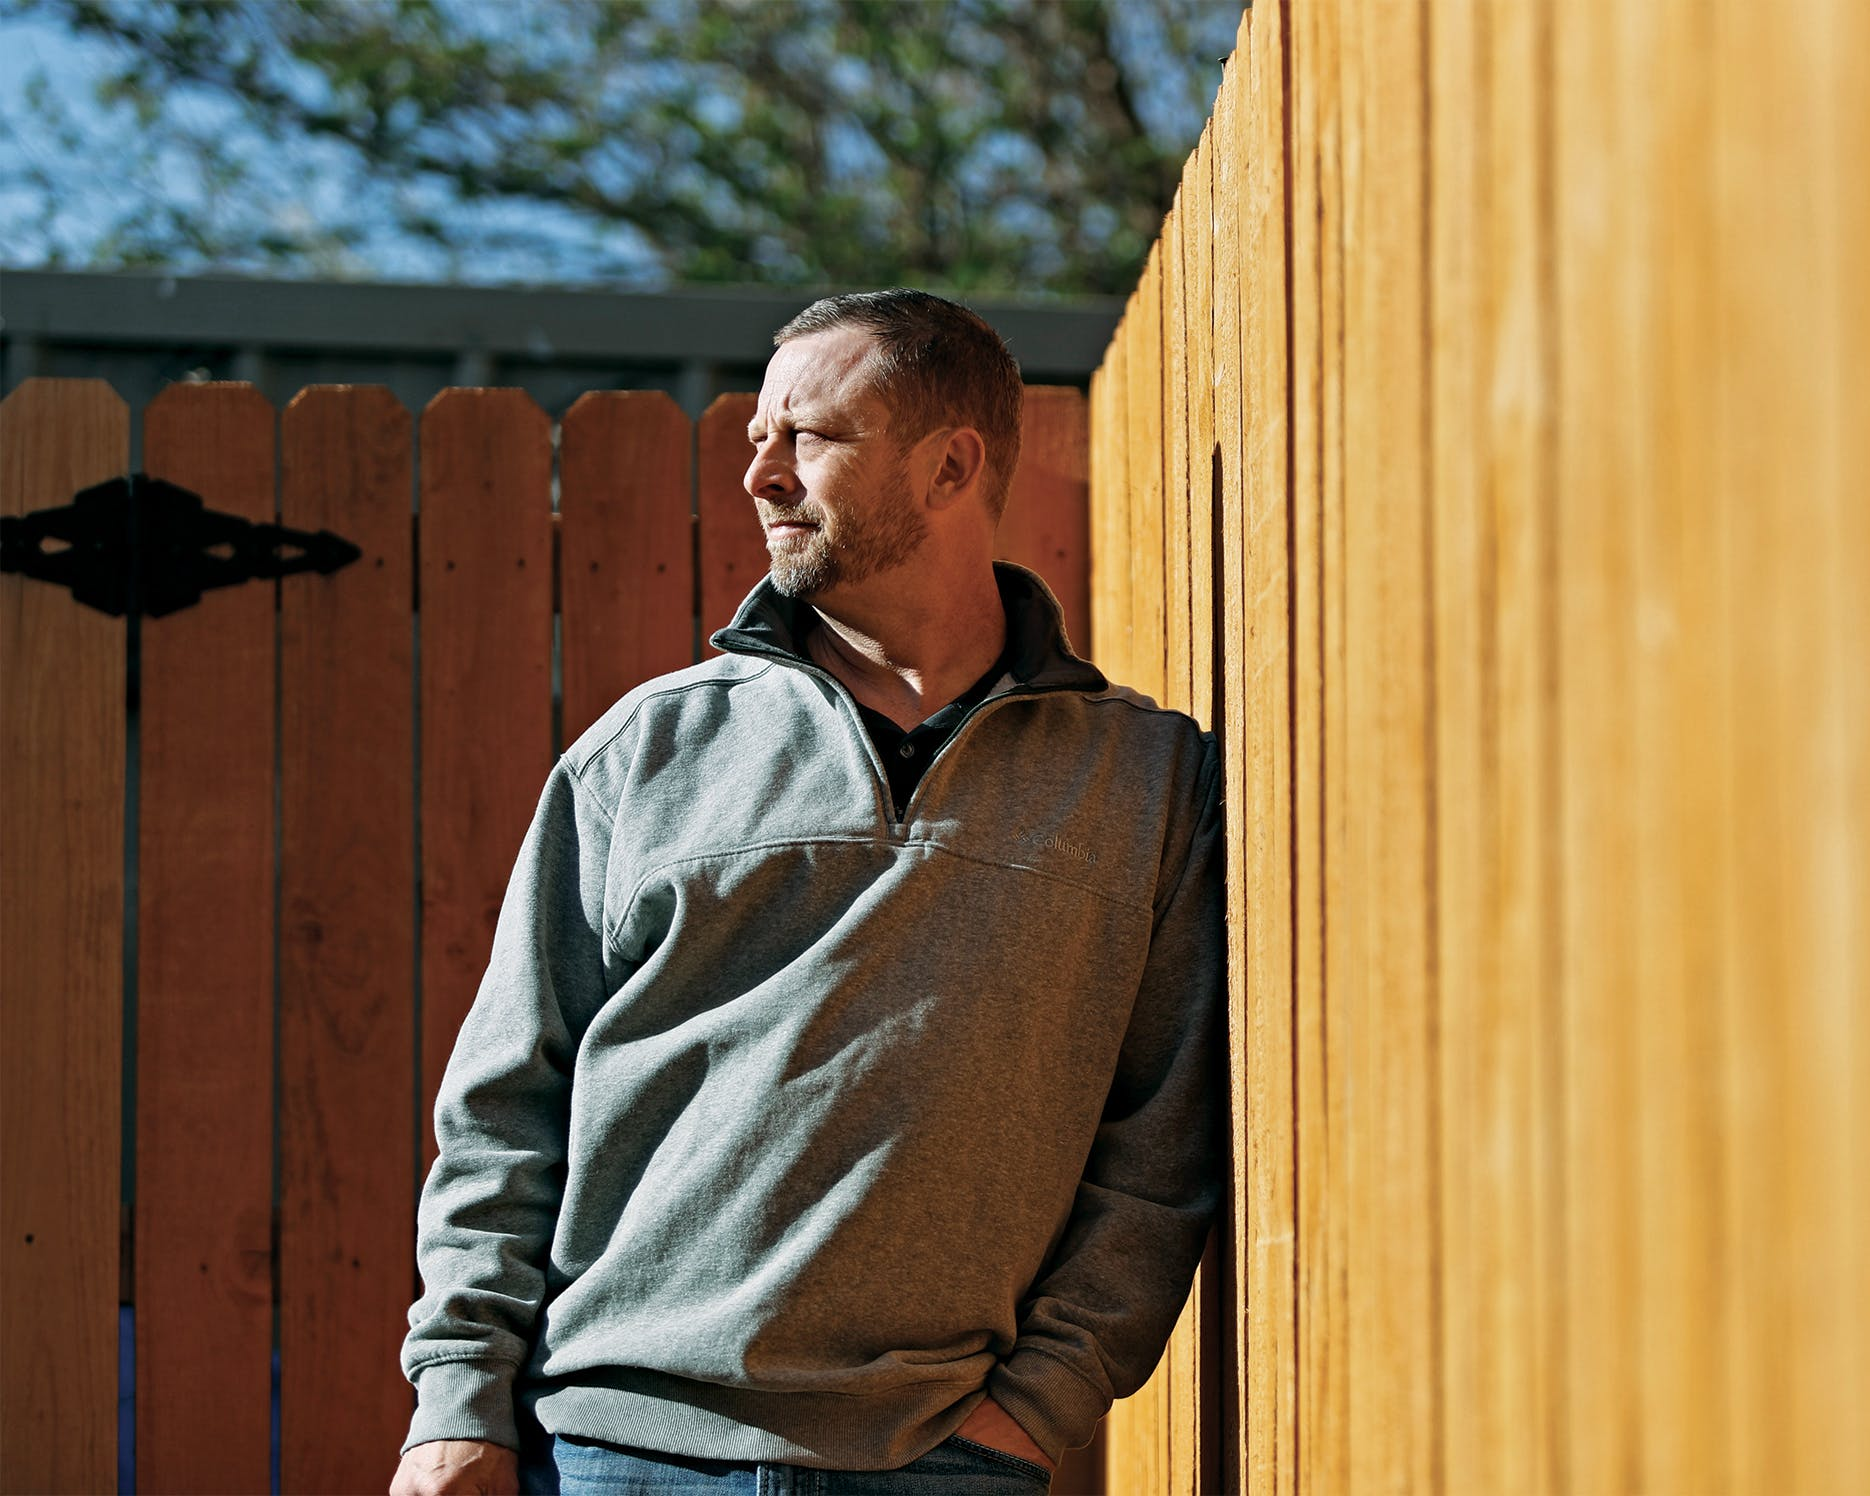 Billy Scroggins outside his home in Vega, on May 8, 2020.